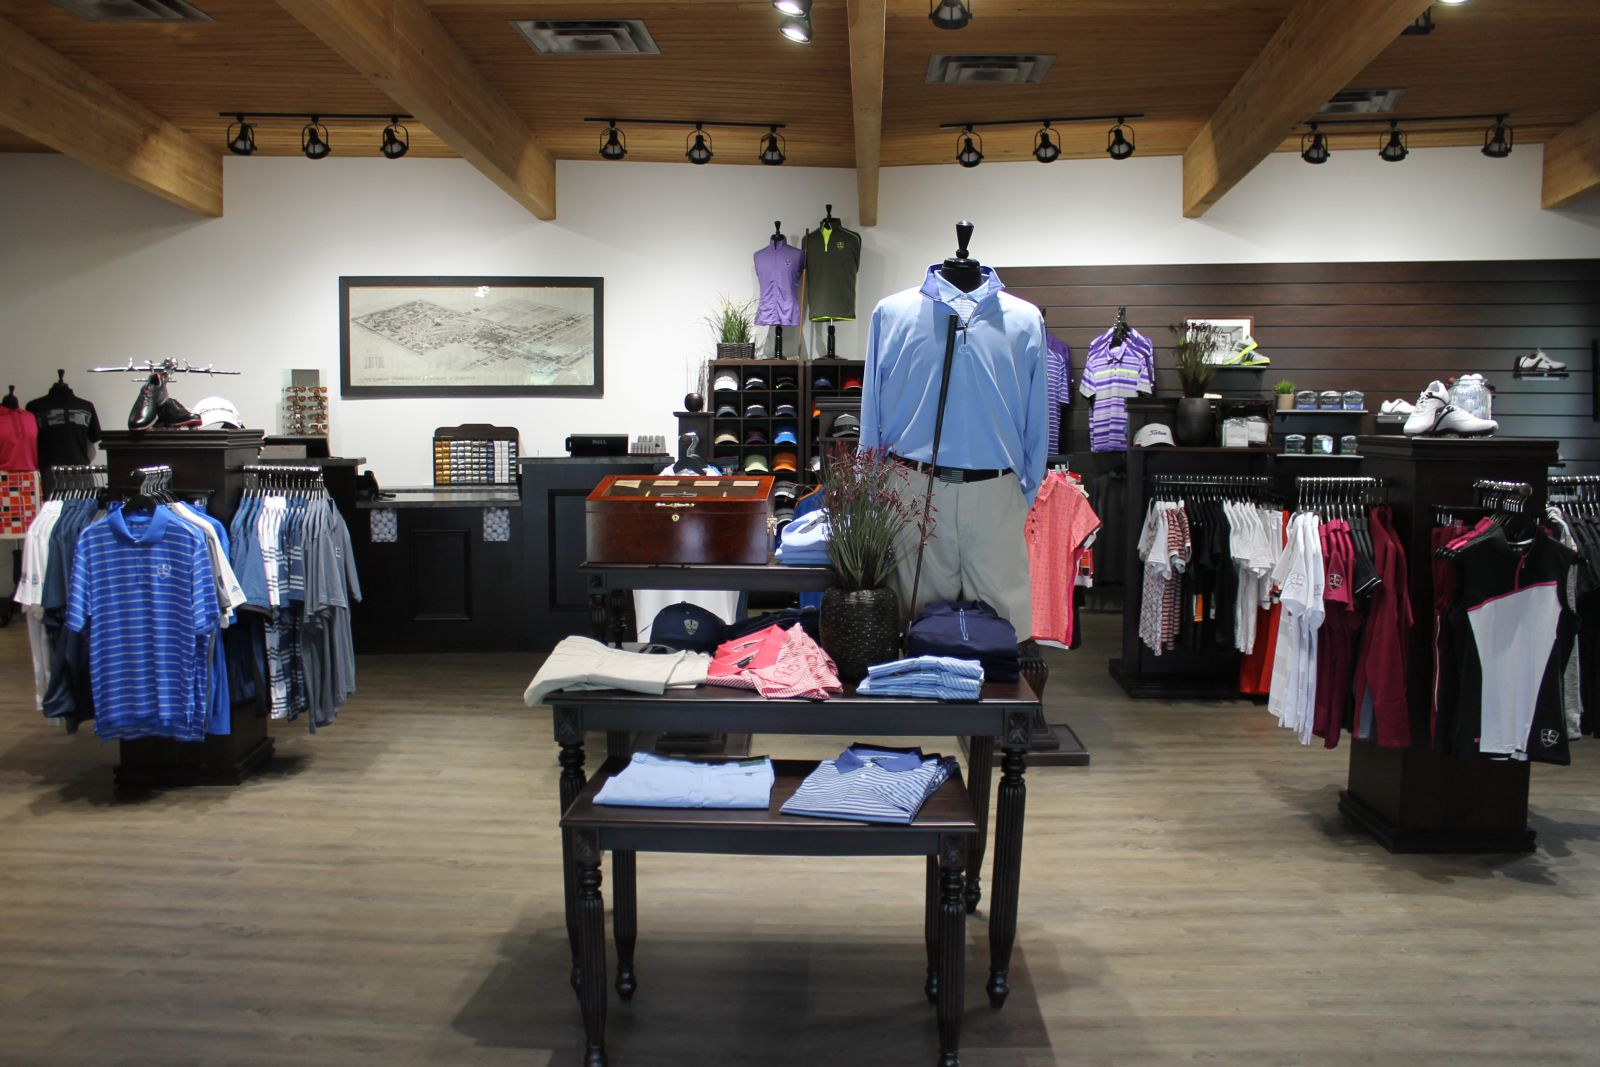 Enjoy great selection at the San Marcos Golf Resort Pro Shop in Chandler, Arizona.